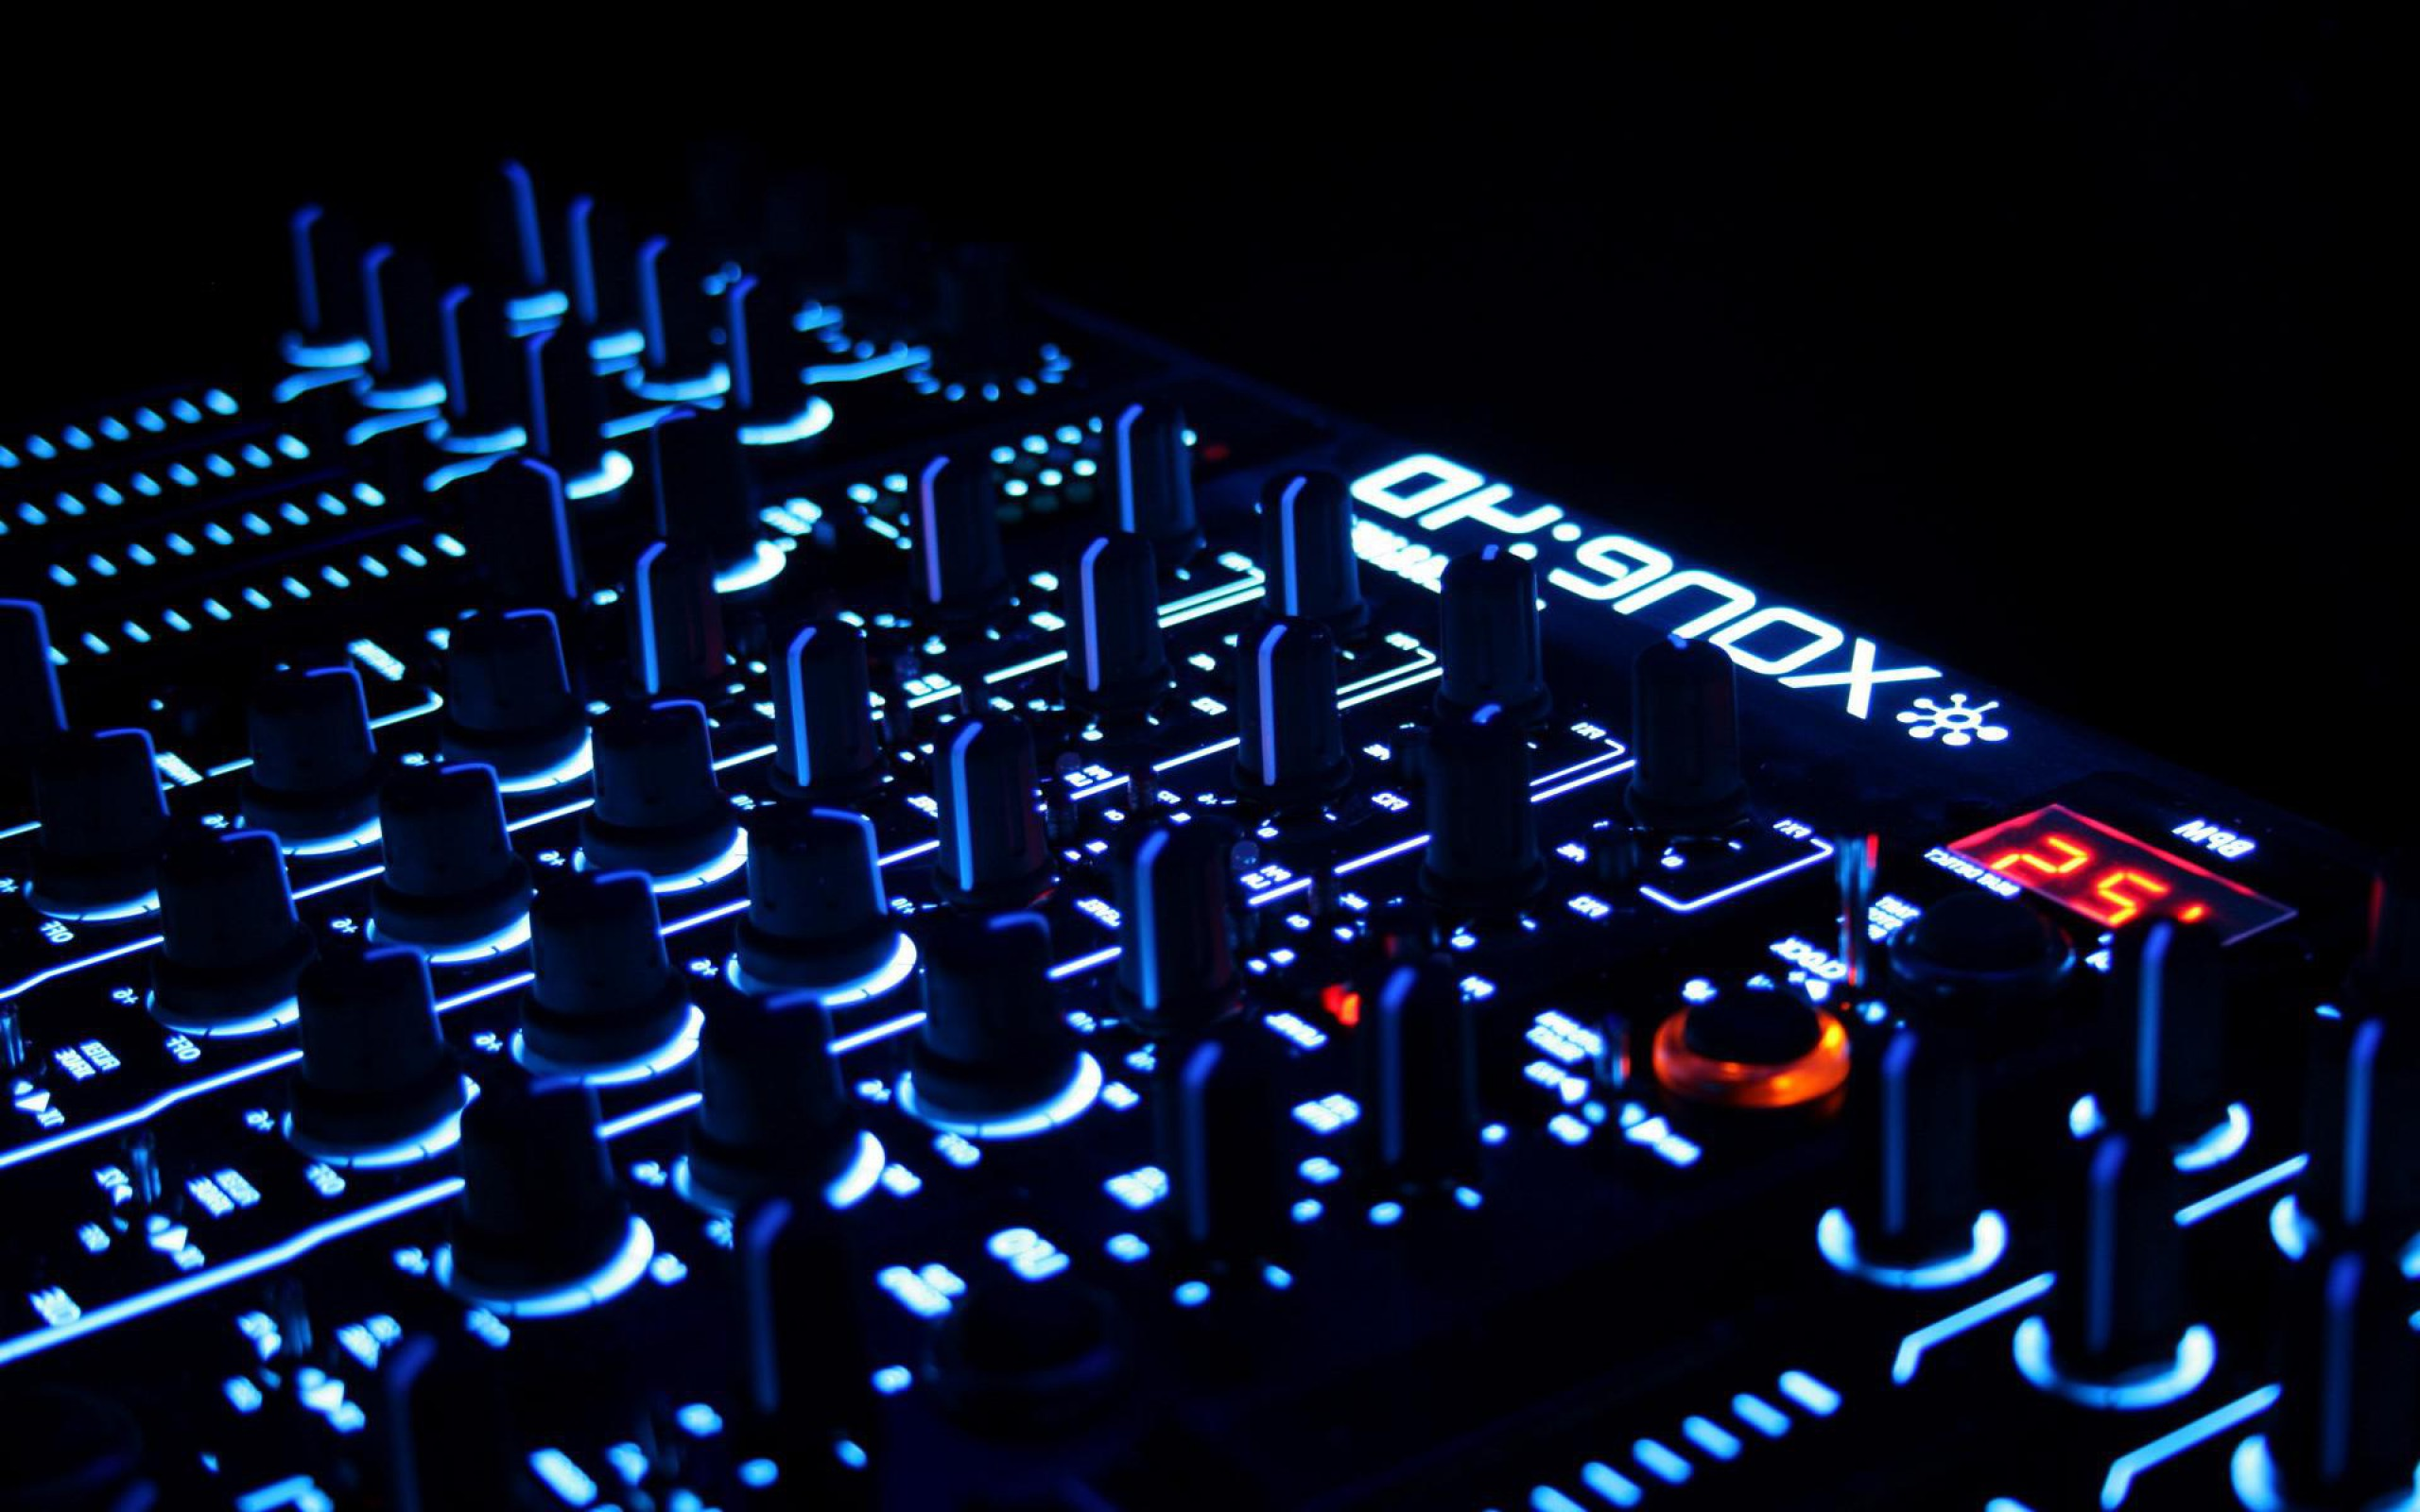 76 House Music Dj Wallpaper On Wallpapersafari